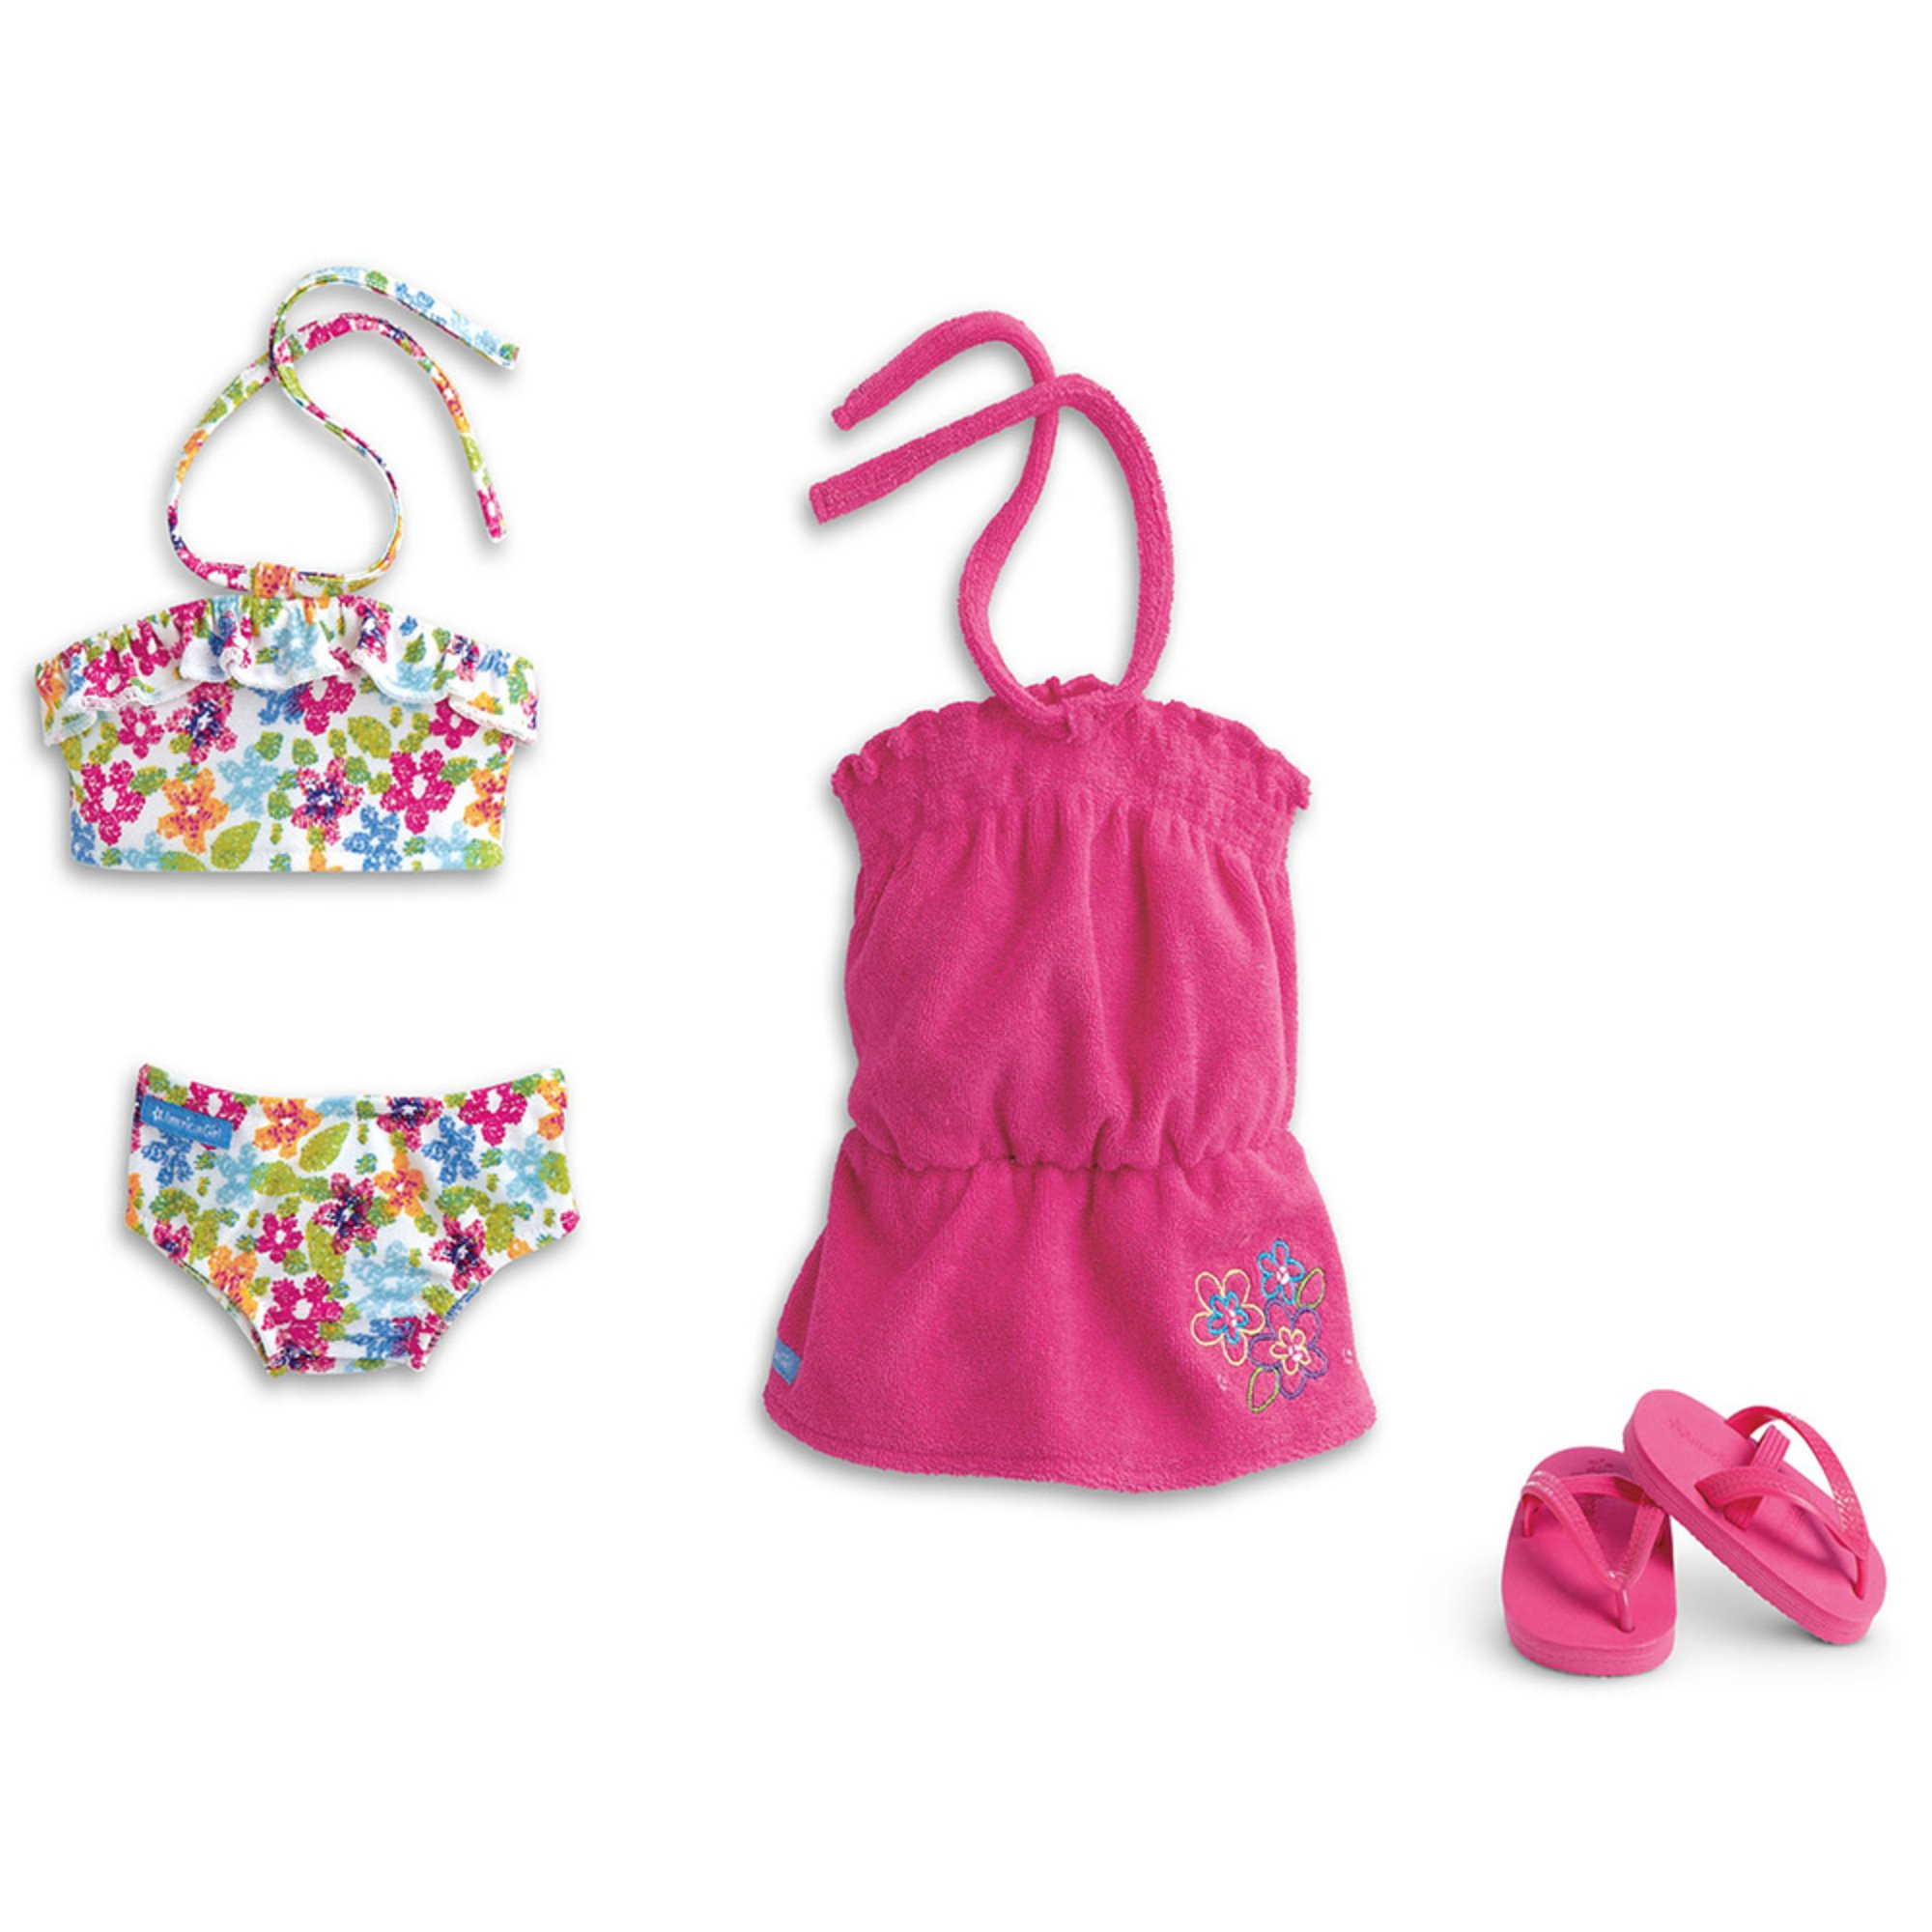 american girl american girl floral swim outfit based on 0 reviews msrp ...